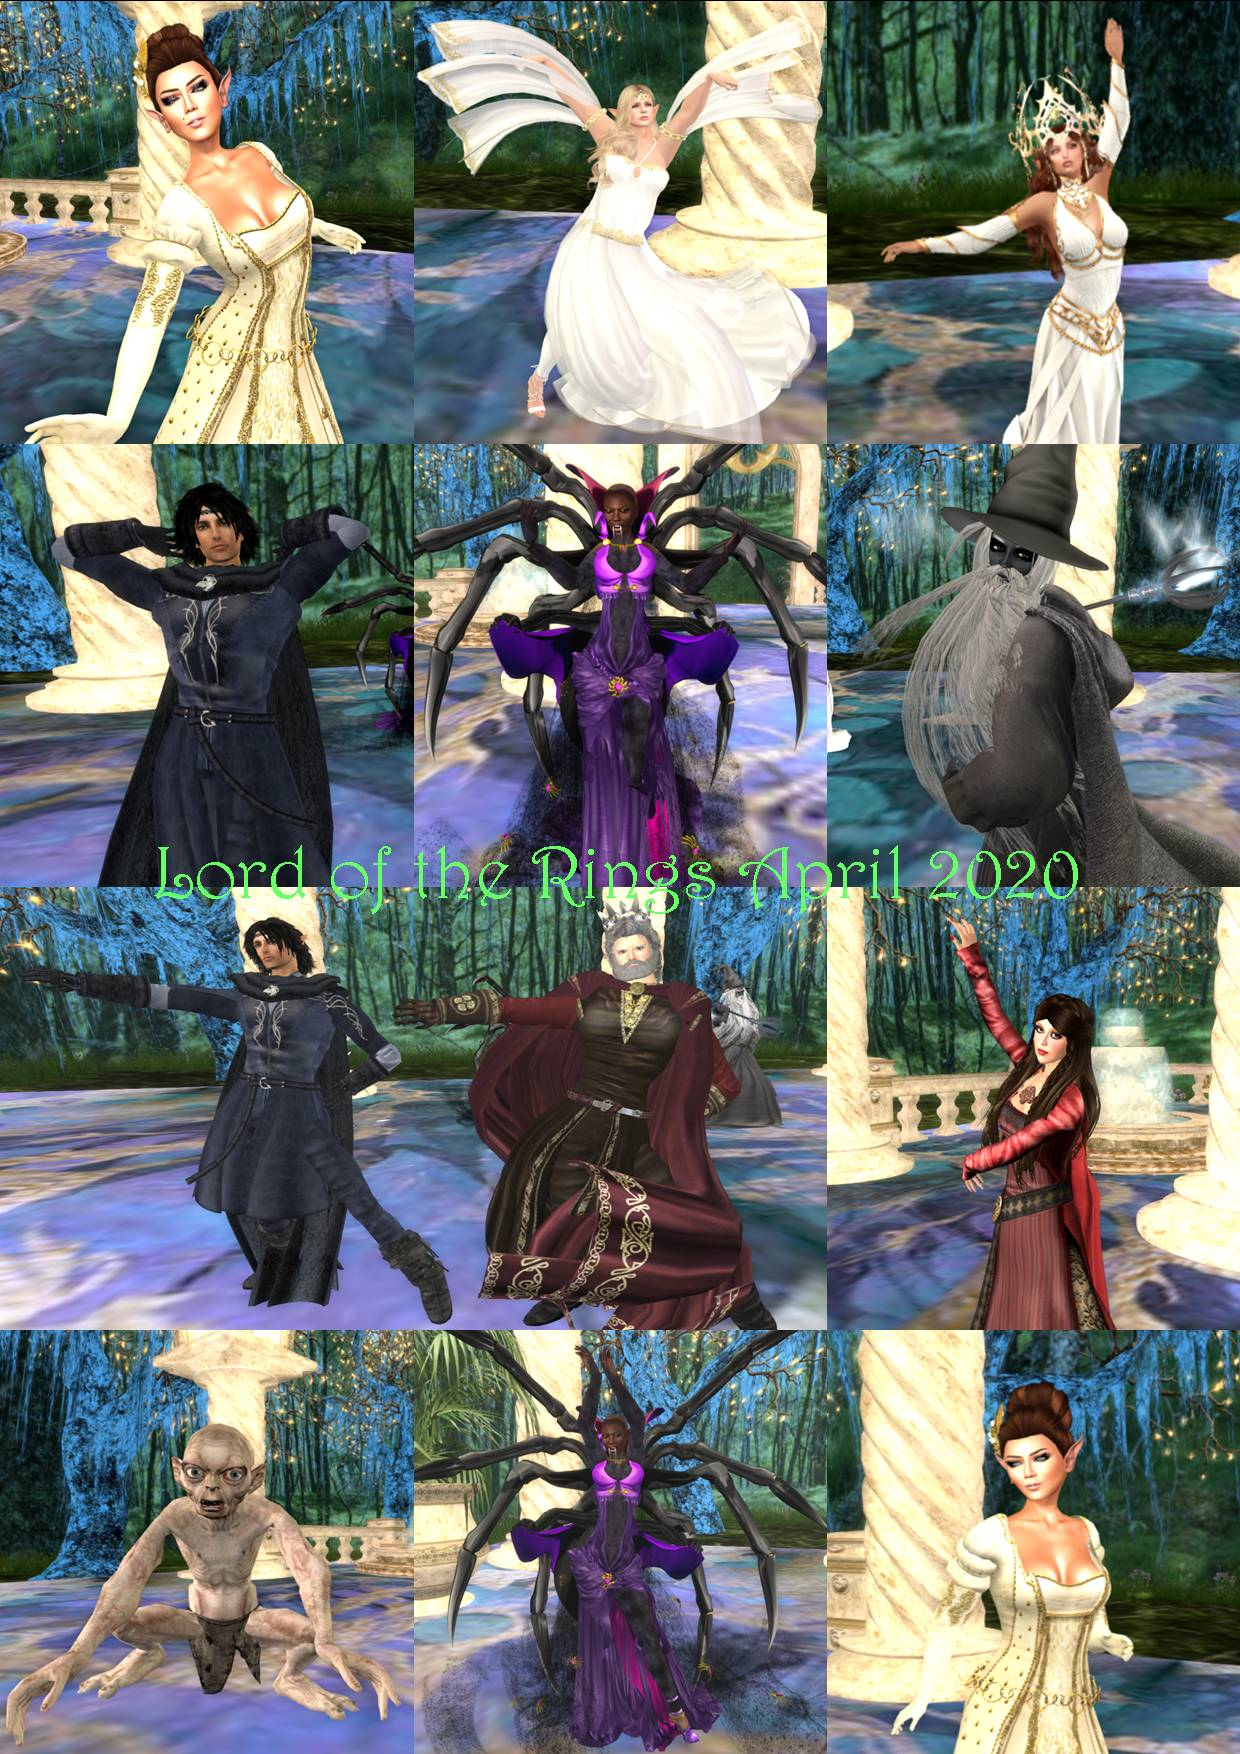 LORD OF THE RINGS PARTY COLLAGE APRIL 2020